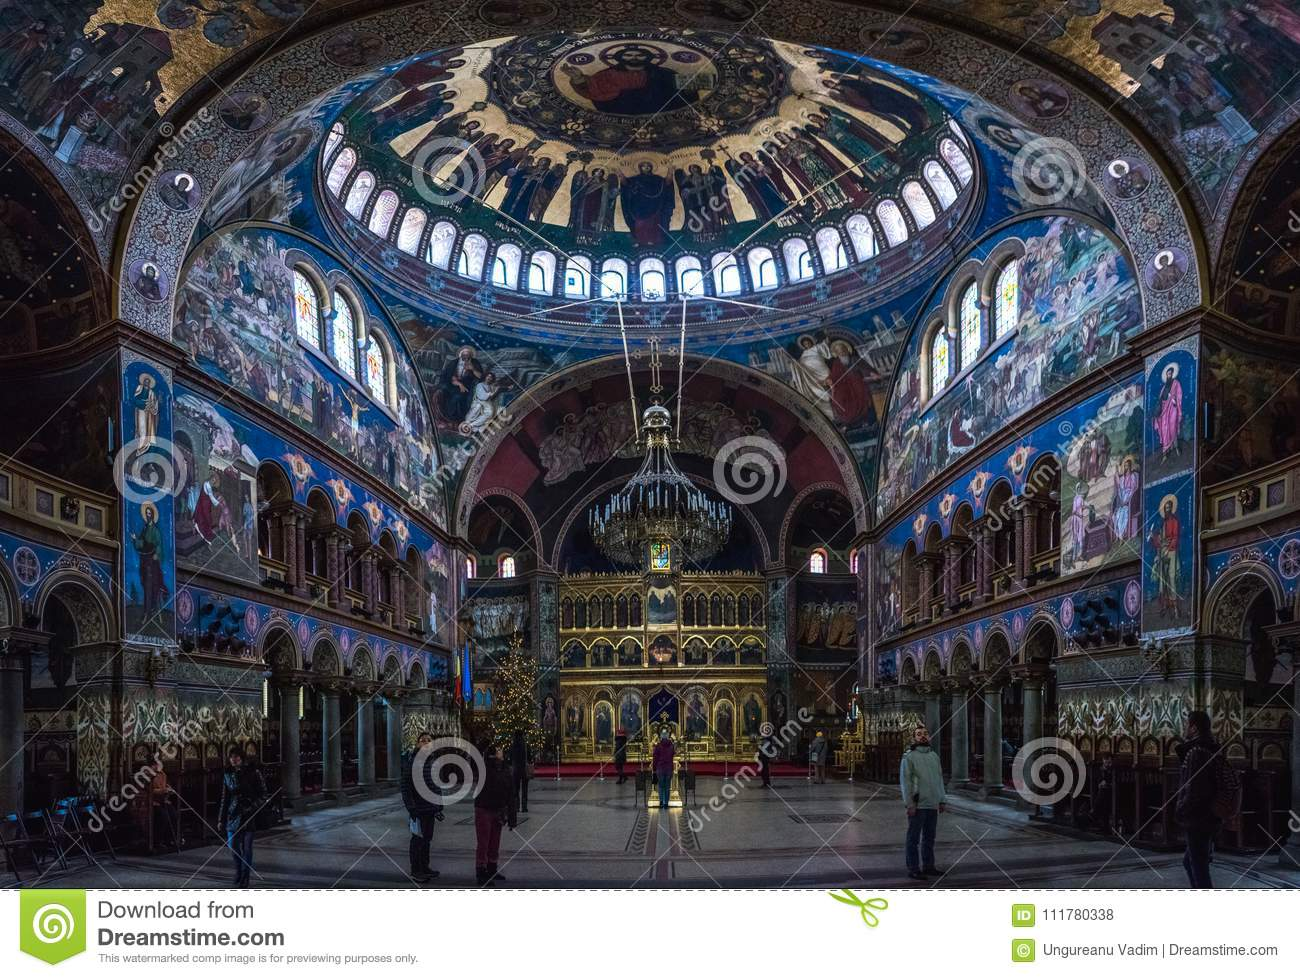 SIBIU, ROMANIA - 7 JANUARY 2016: People admiring the interior of the Holy Trinity Cathedral in Sibiu, Romania.